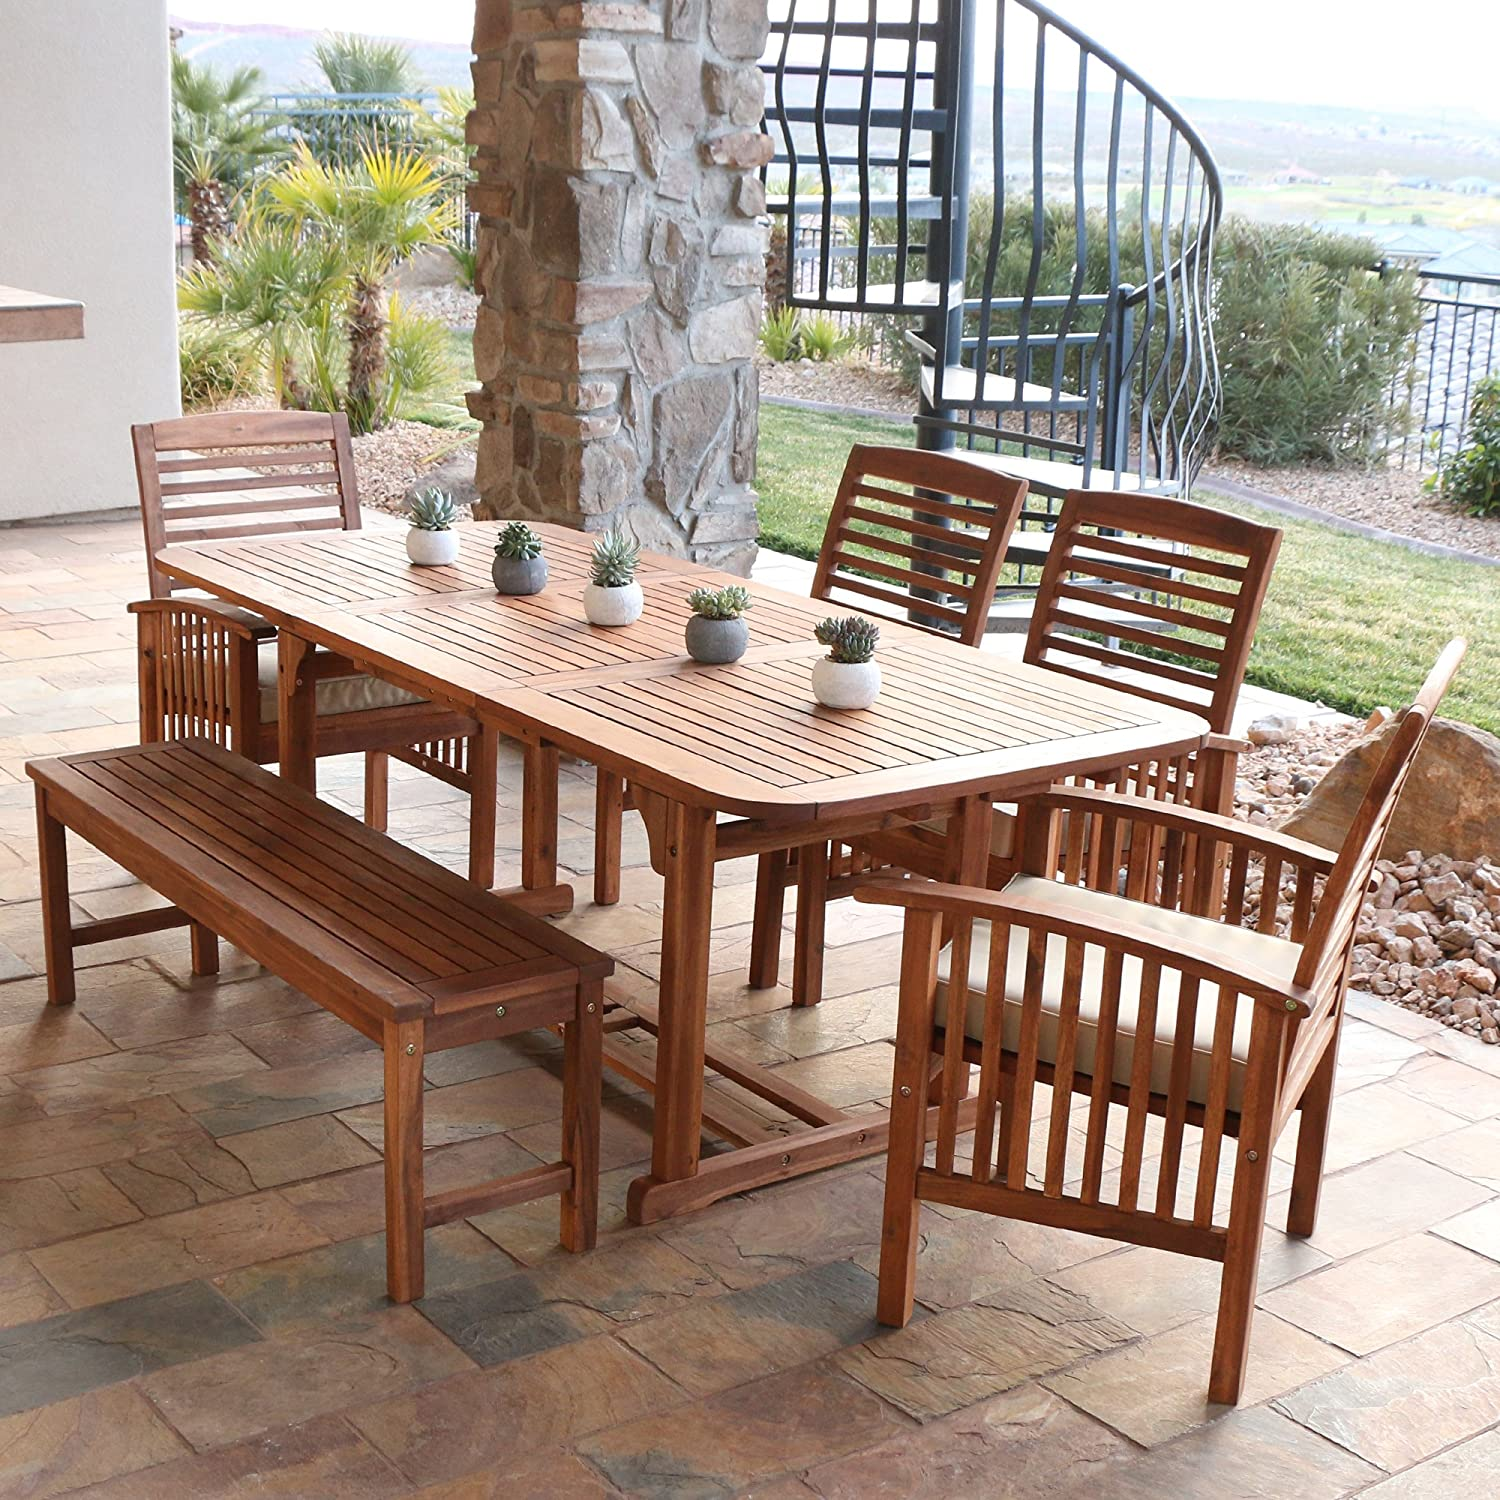 chairs dining of beautiful tulie fire living pit and patios belham full piece aluminum patio pub table size set